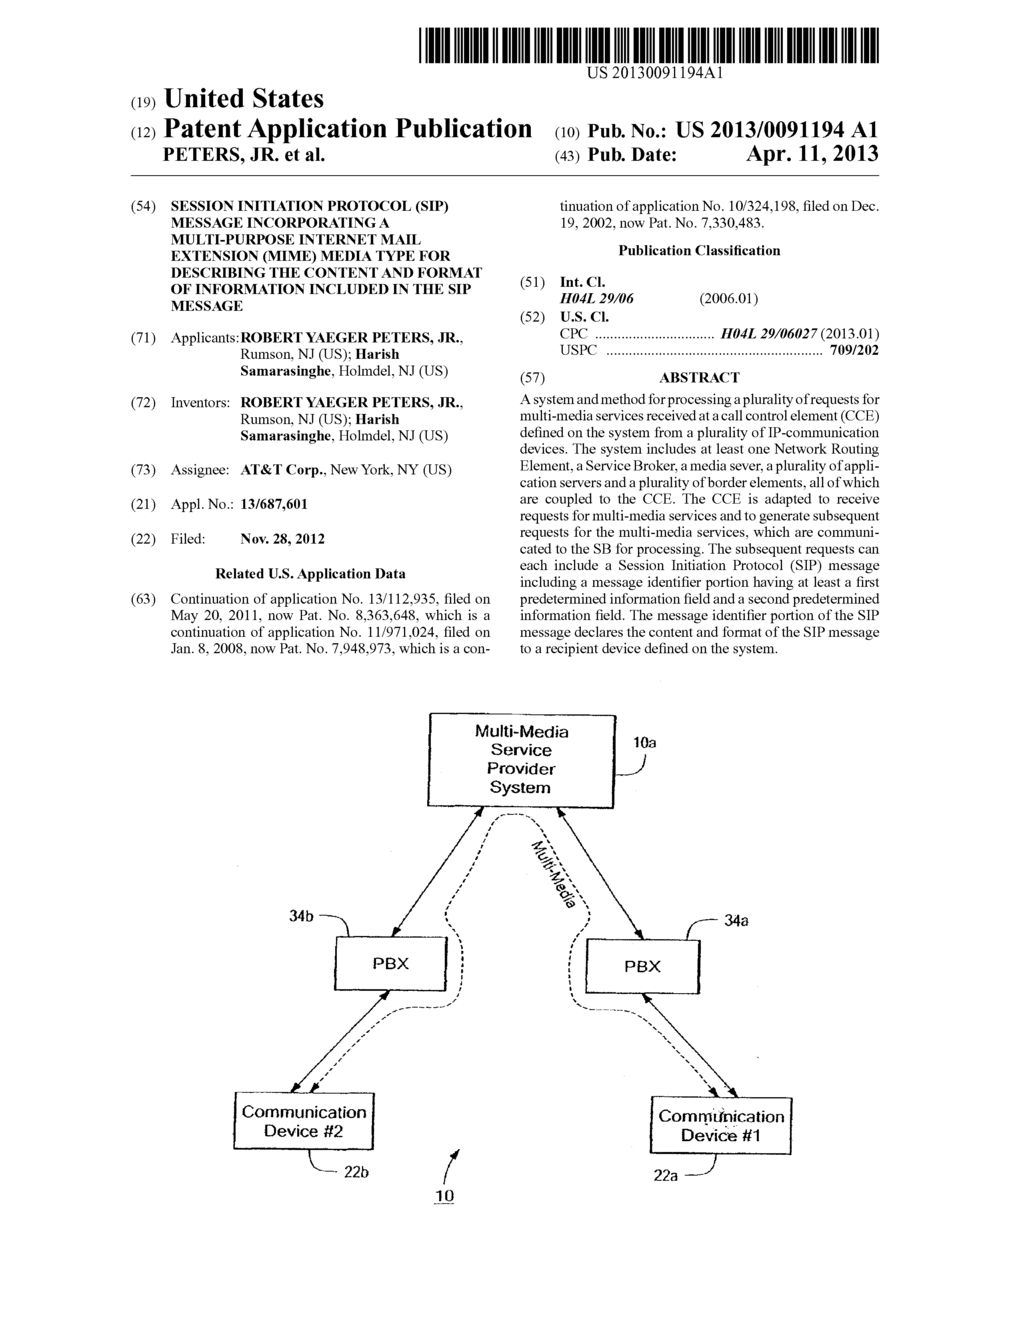 Session Initiation Protocol Sip Message Incorporating A